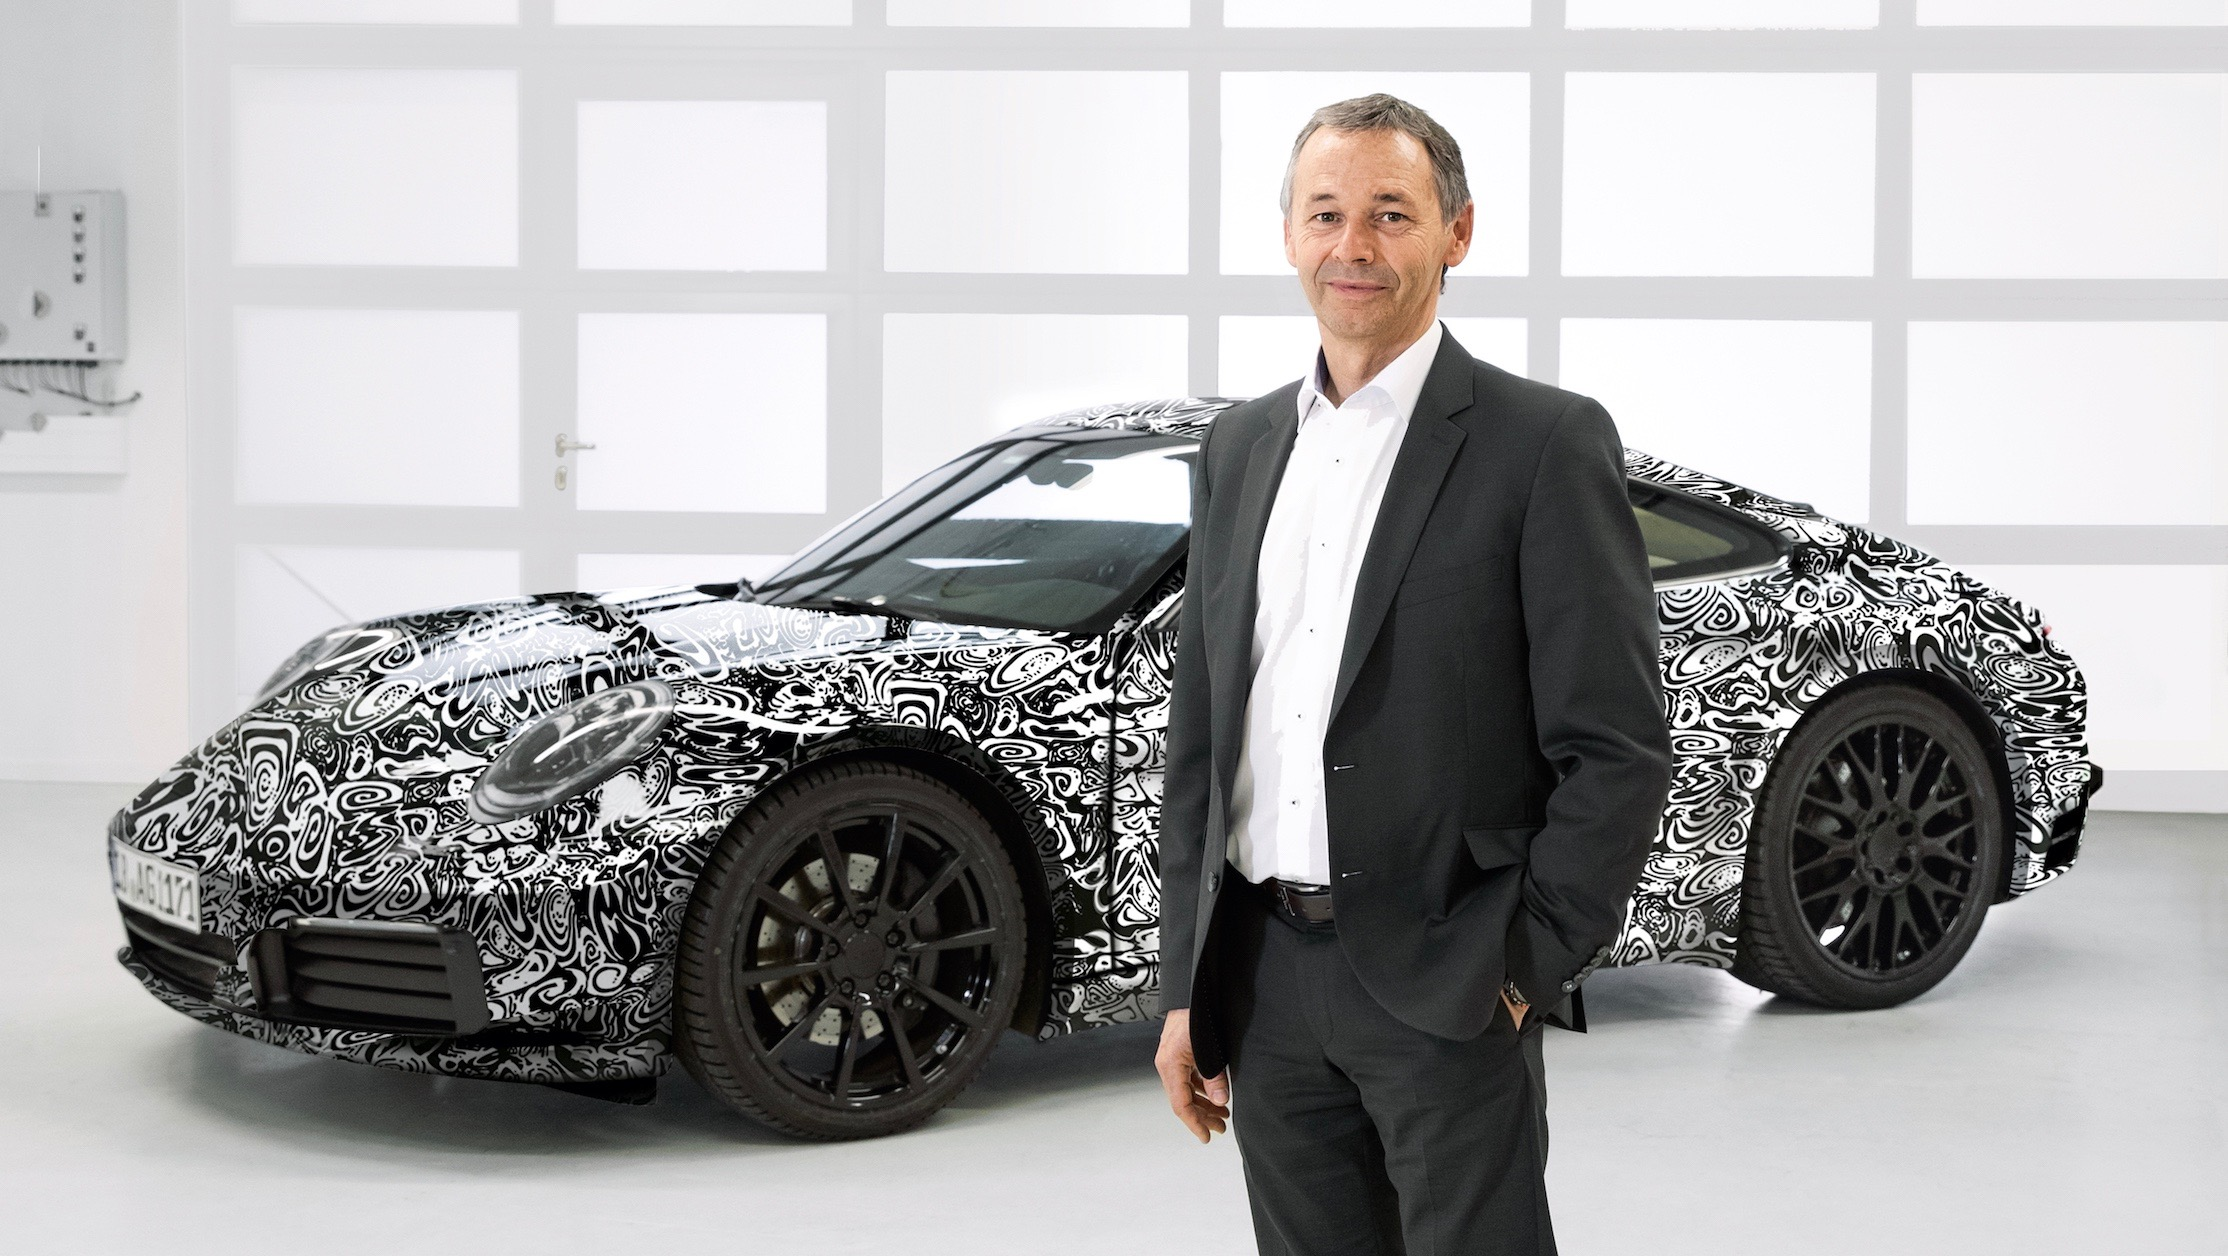 Porsche introduced its most powerful luxury vehicle with aspirated engine